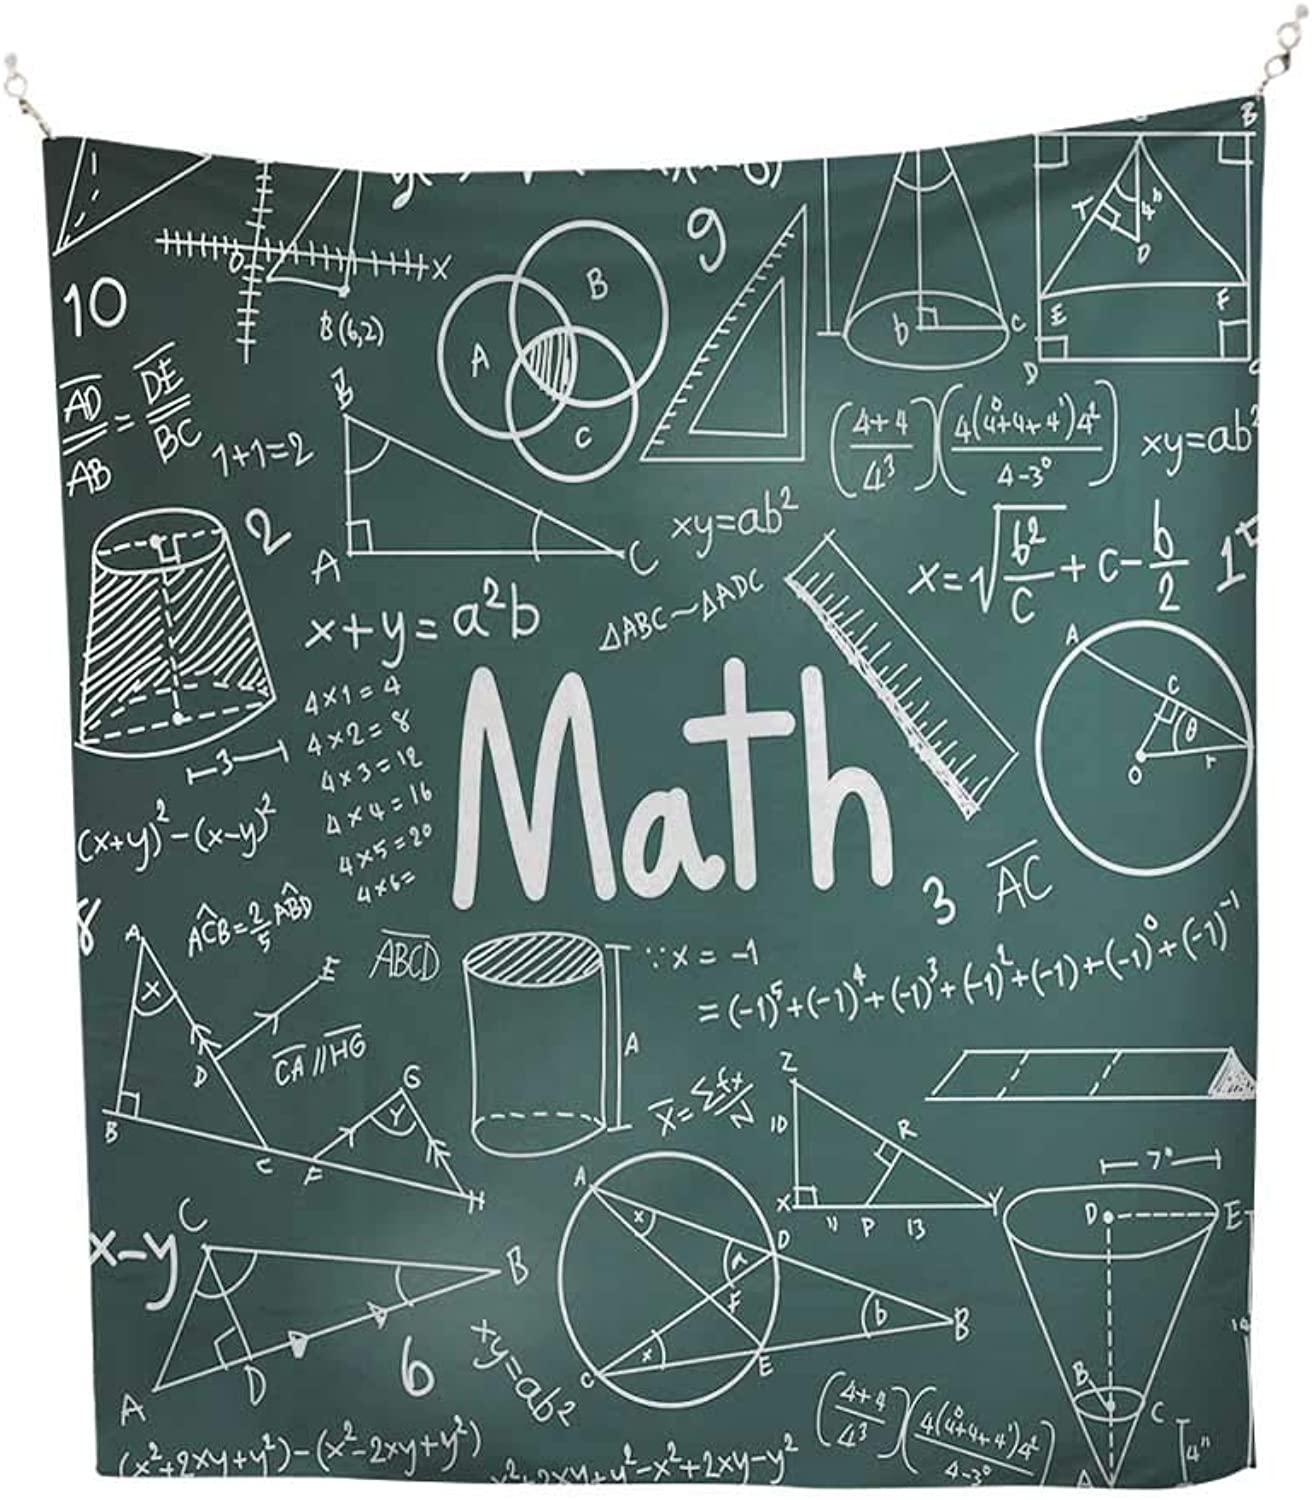 Mathematics Classroom Decorcool tapestrySchool Board Full of Drawings Formulas Shapes Theory Math Word 57W x 74L inch Tapestry for wallTeal White